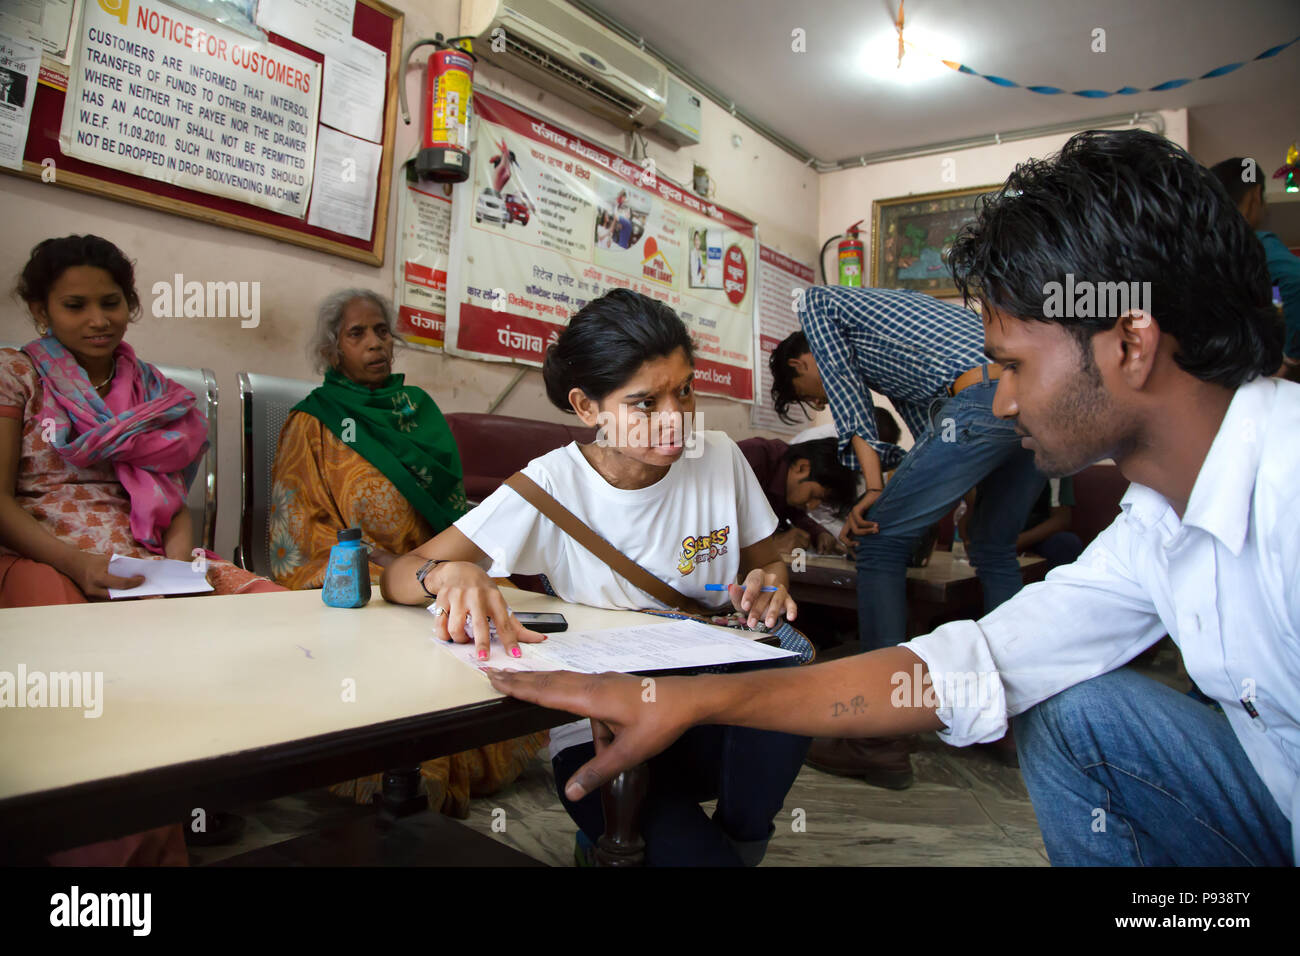 Ritu, victim of Acid attack in Agra (from Stop Acid Attacks campaign, India) - Stock Image